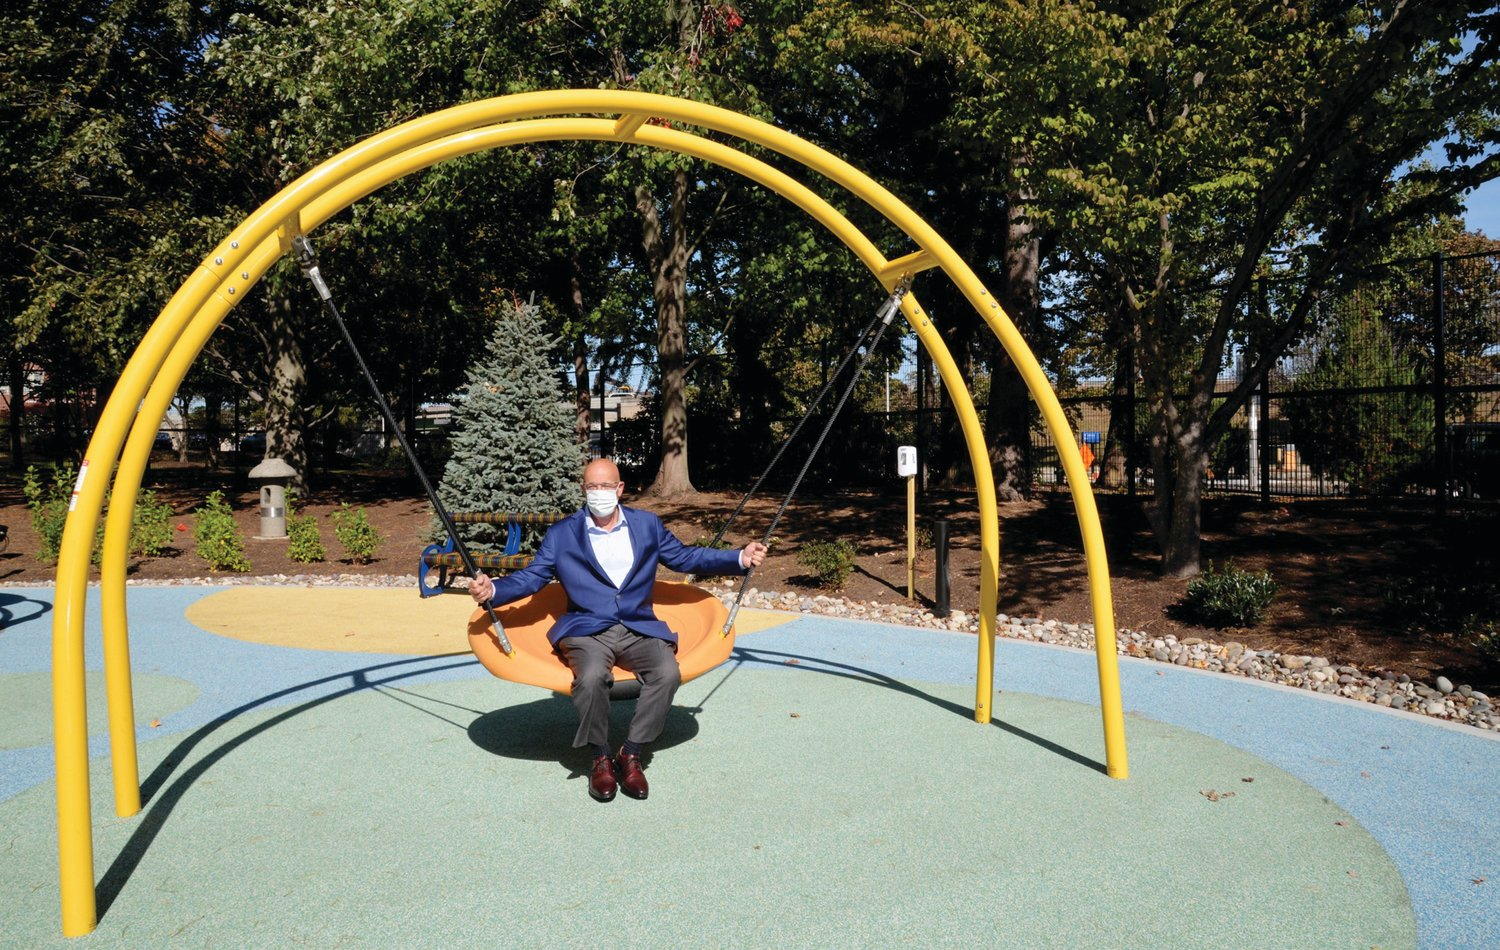 TAKING A SWING: Tom Rezendes, senior vice president at Pariseault Builders, tries out the swing at the revamped playground at Hasbro Children's Hospital during a recent visit. The Cranston-based led the construction effort of the project.